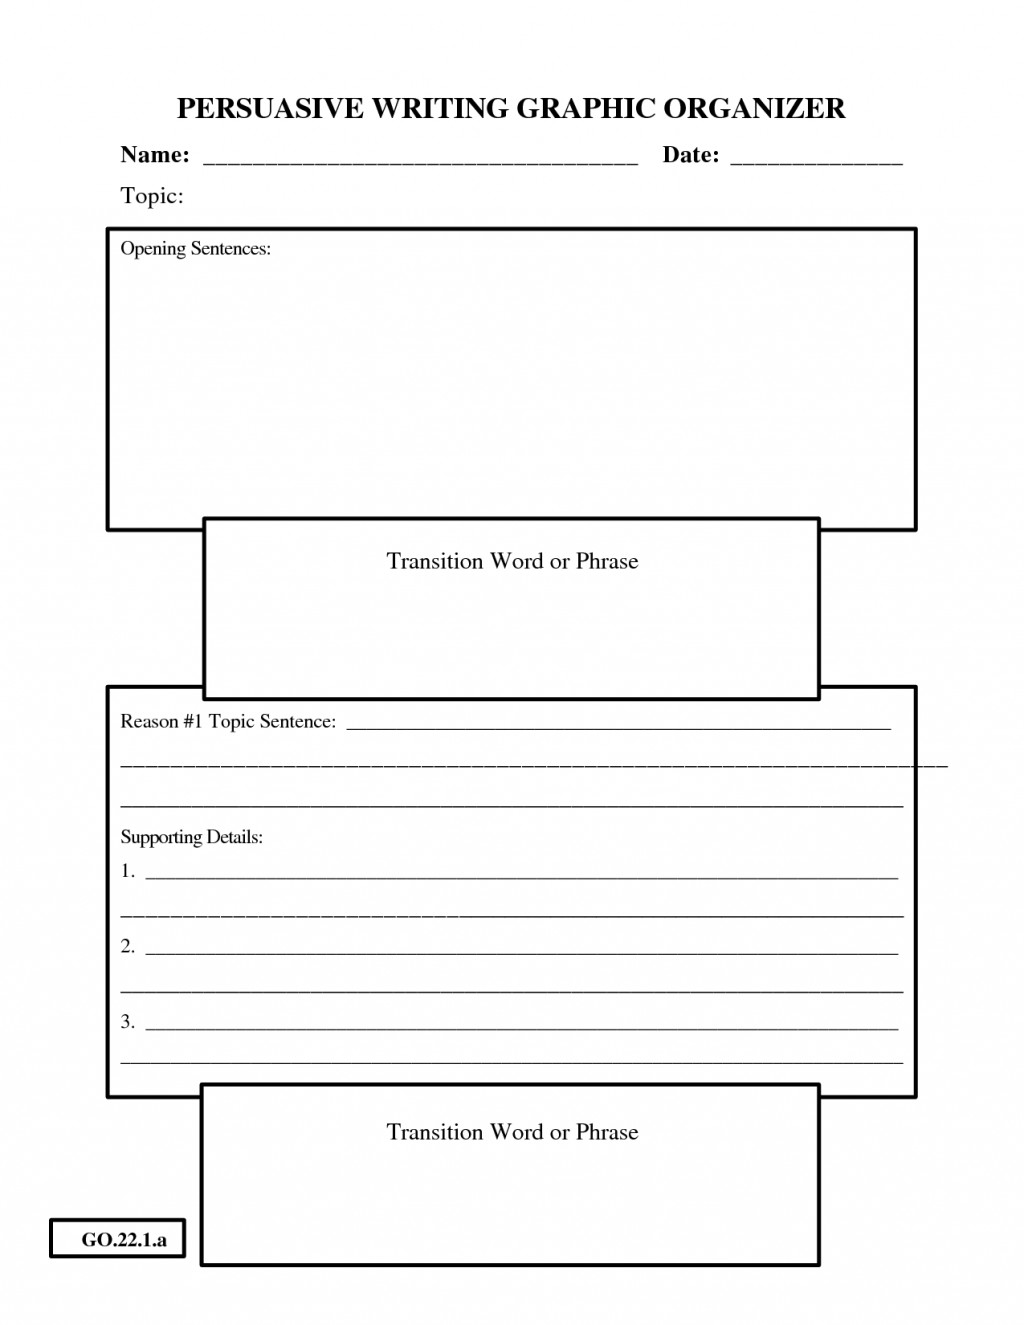 012 Expository Essay Graphic Organizer Awesome Printable Writing Middle School Large